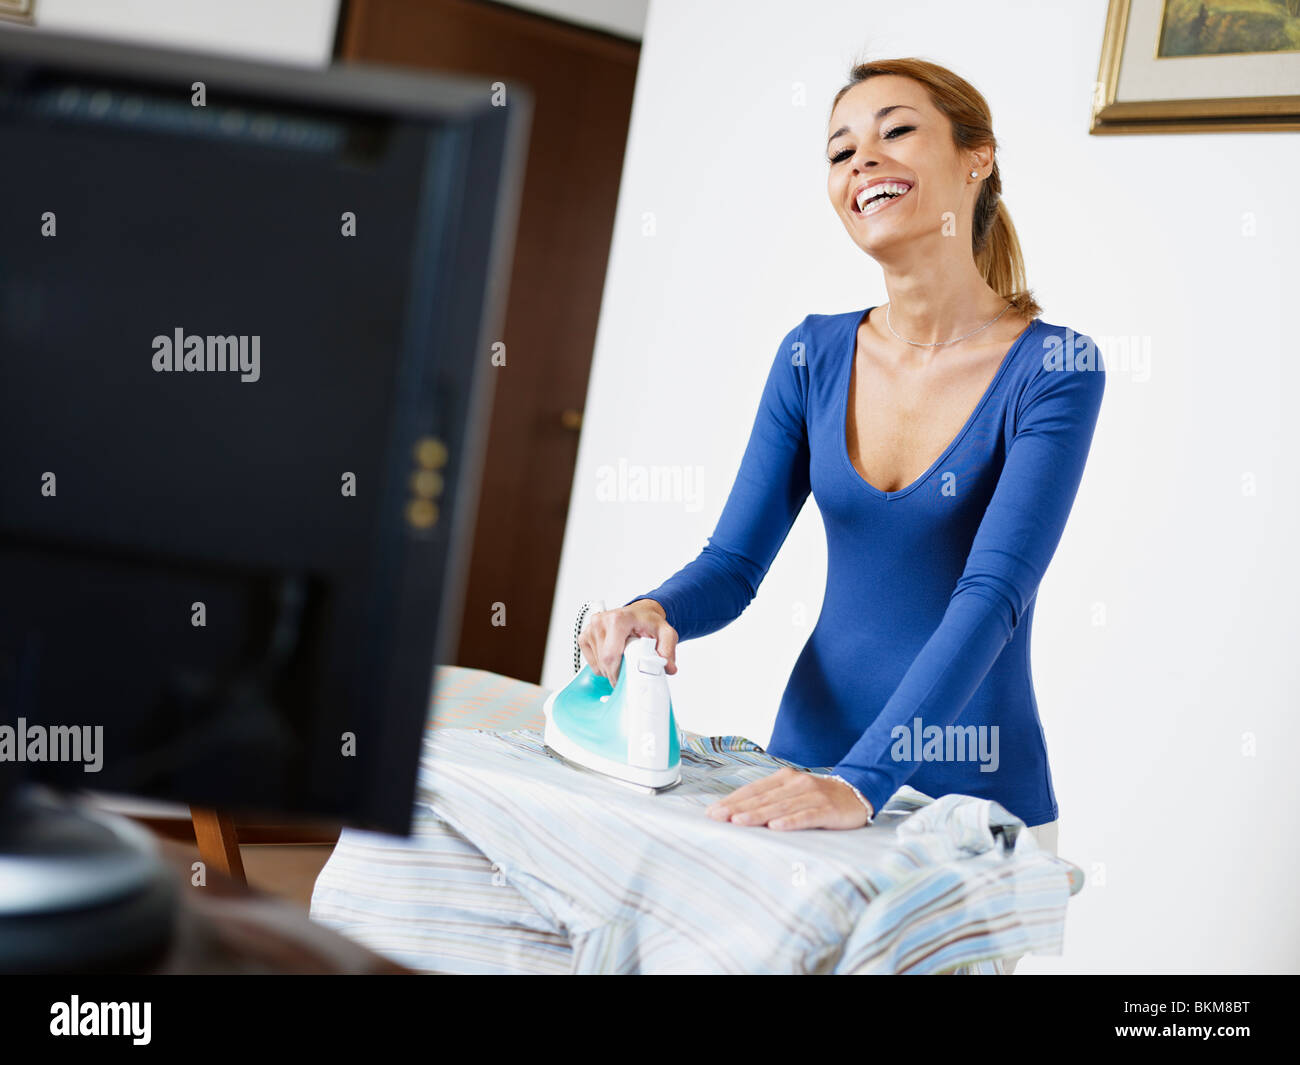 woman with iron, watching tv show and laughing - Stock Image